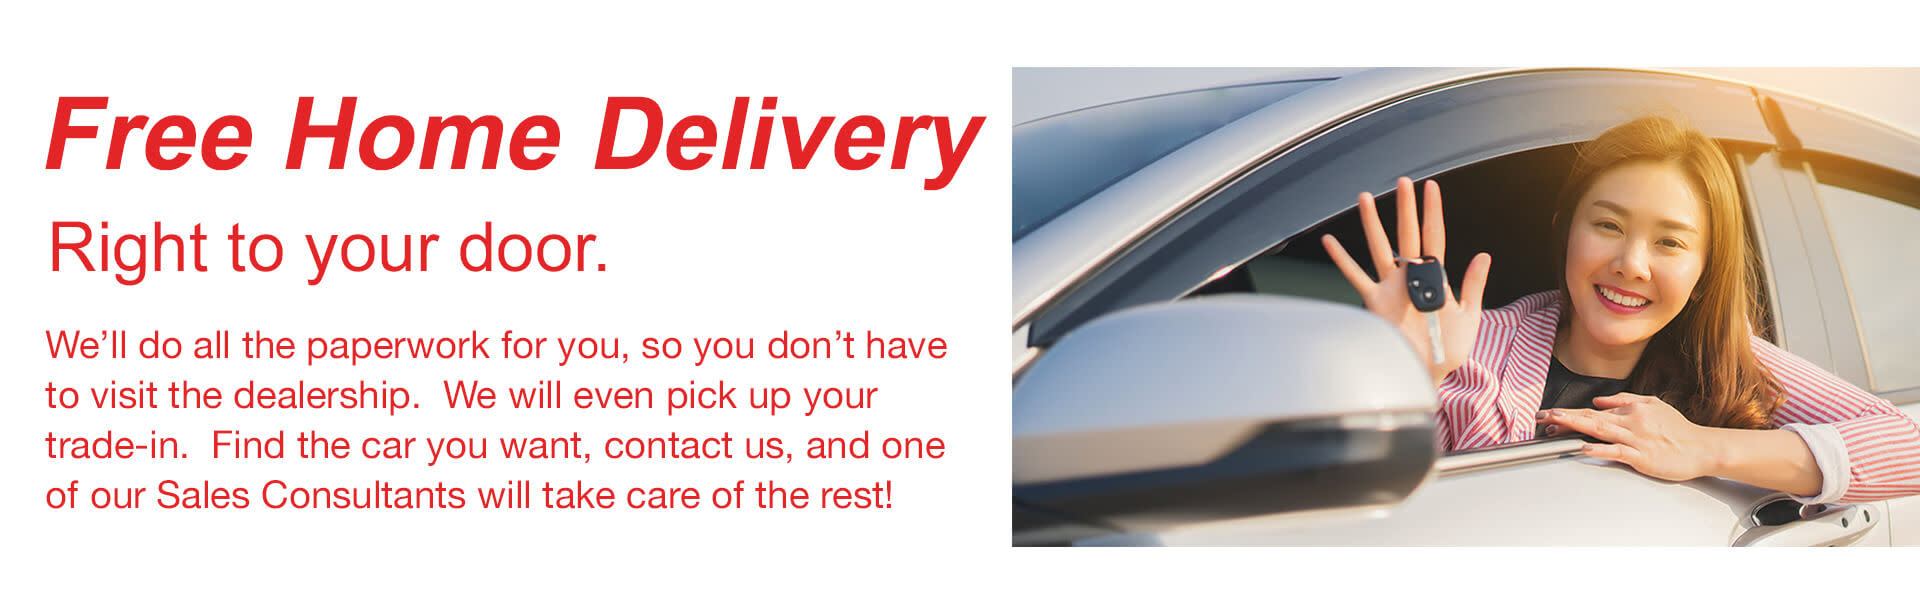 Piercey Toyota Free Home Delivery